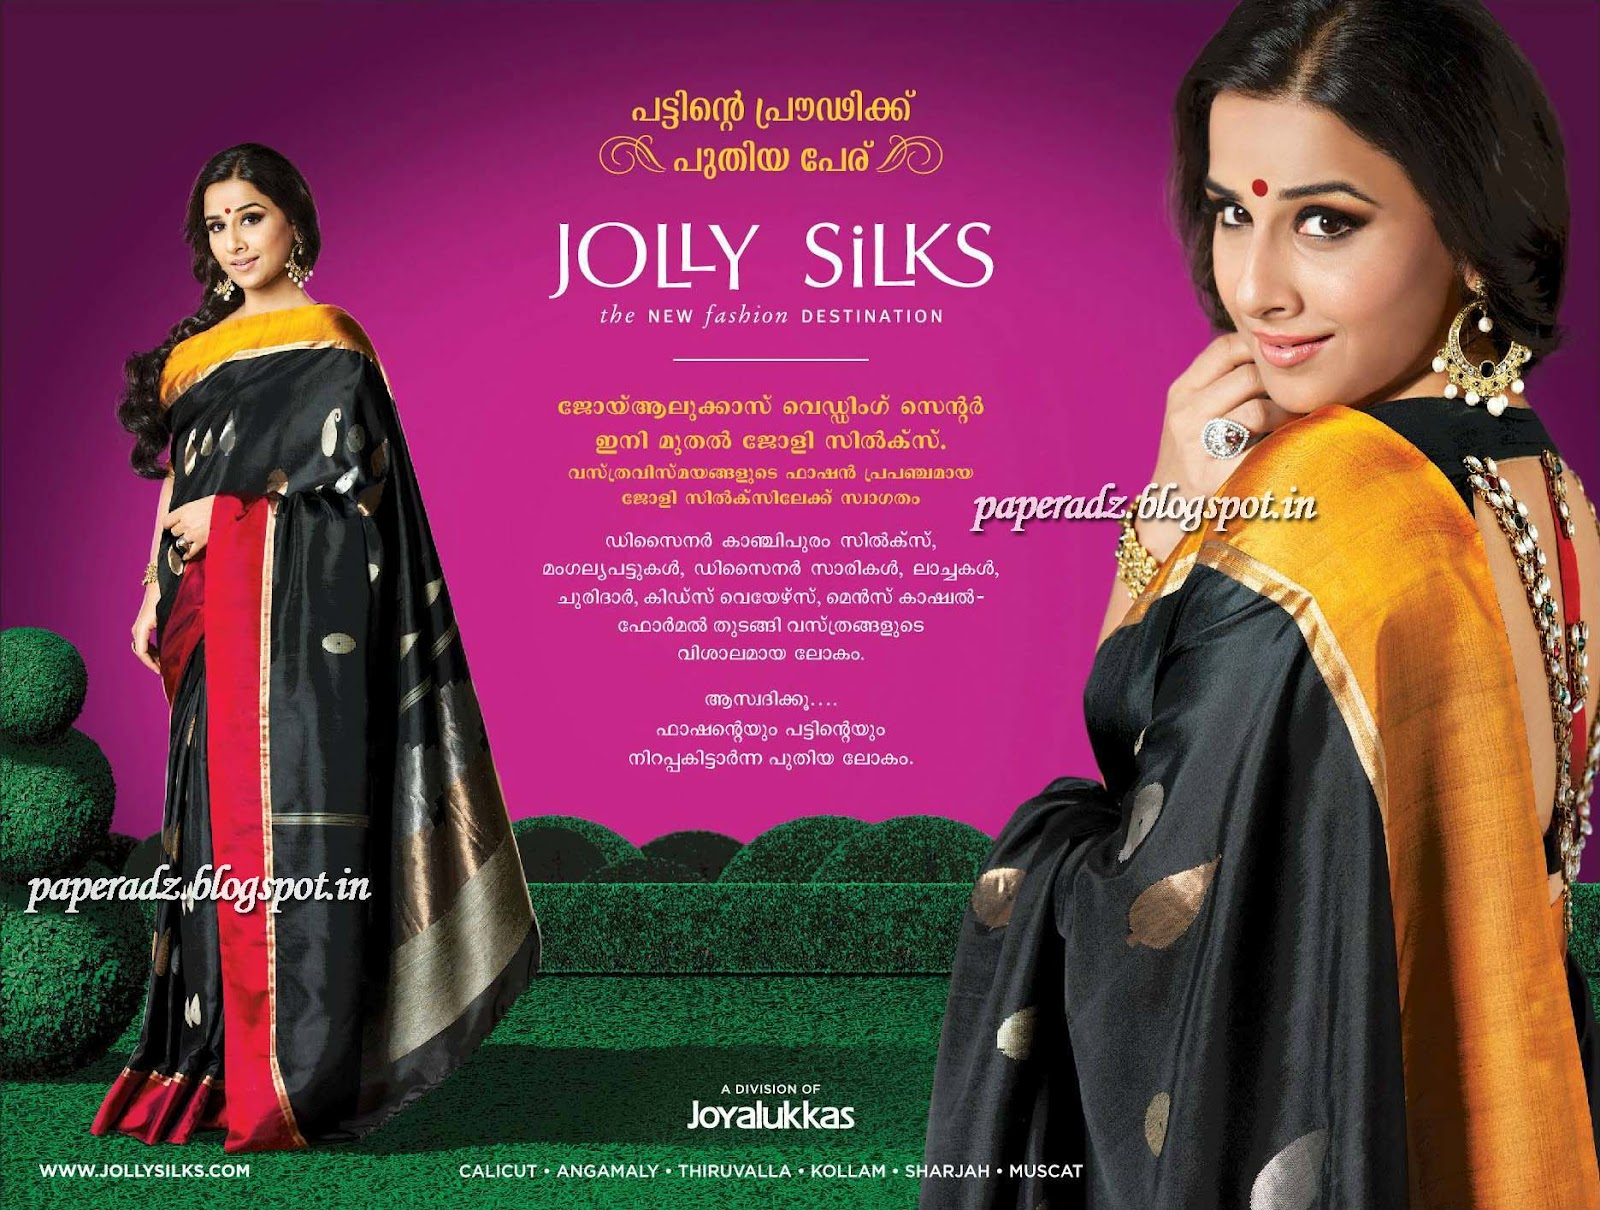 Joy Alukkas wedding centree vidya balan paper advertisements